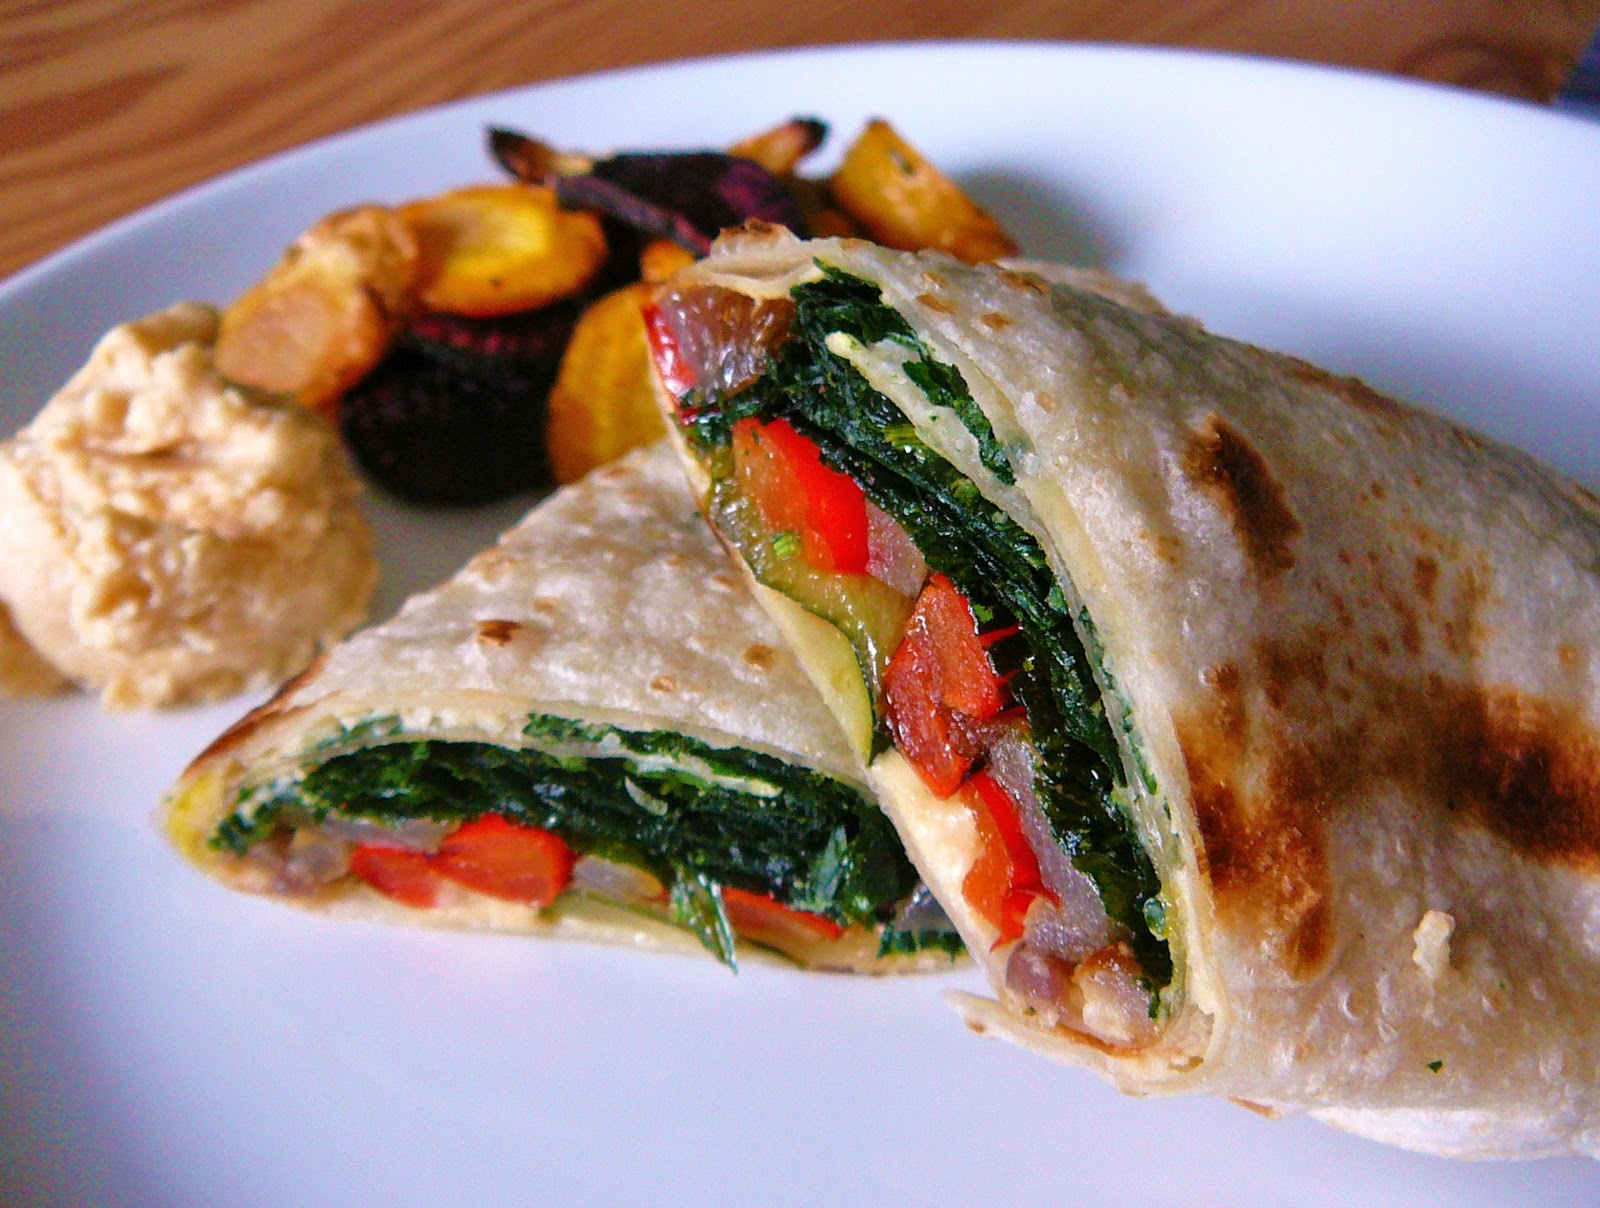 ... Vegetable Wrap with Oven-Fried Spinach and Caramelized Onion Hummus